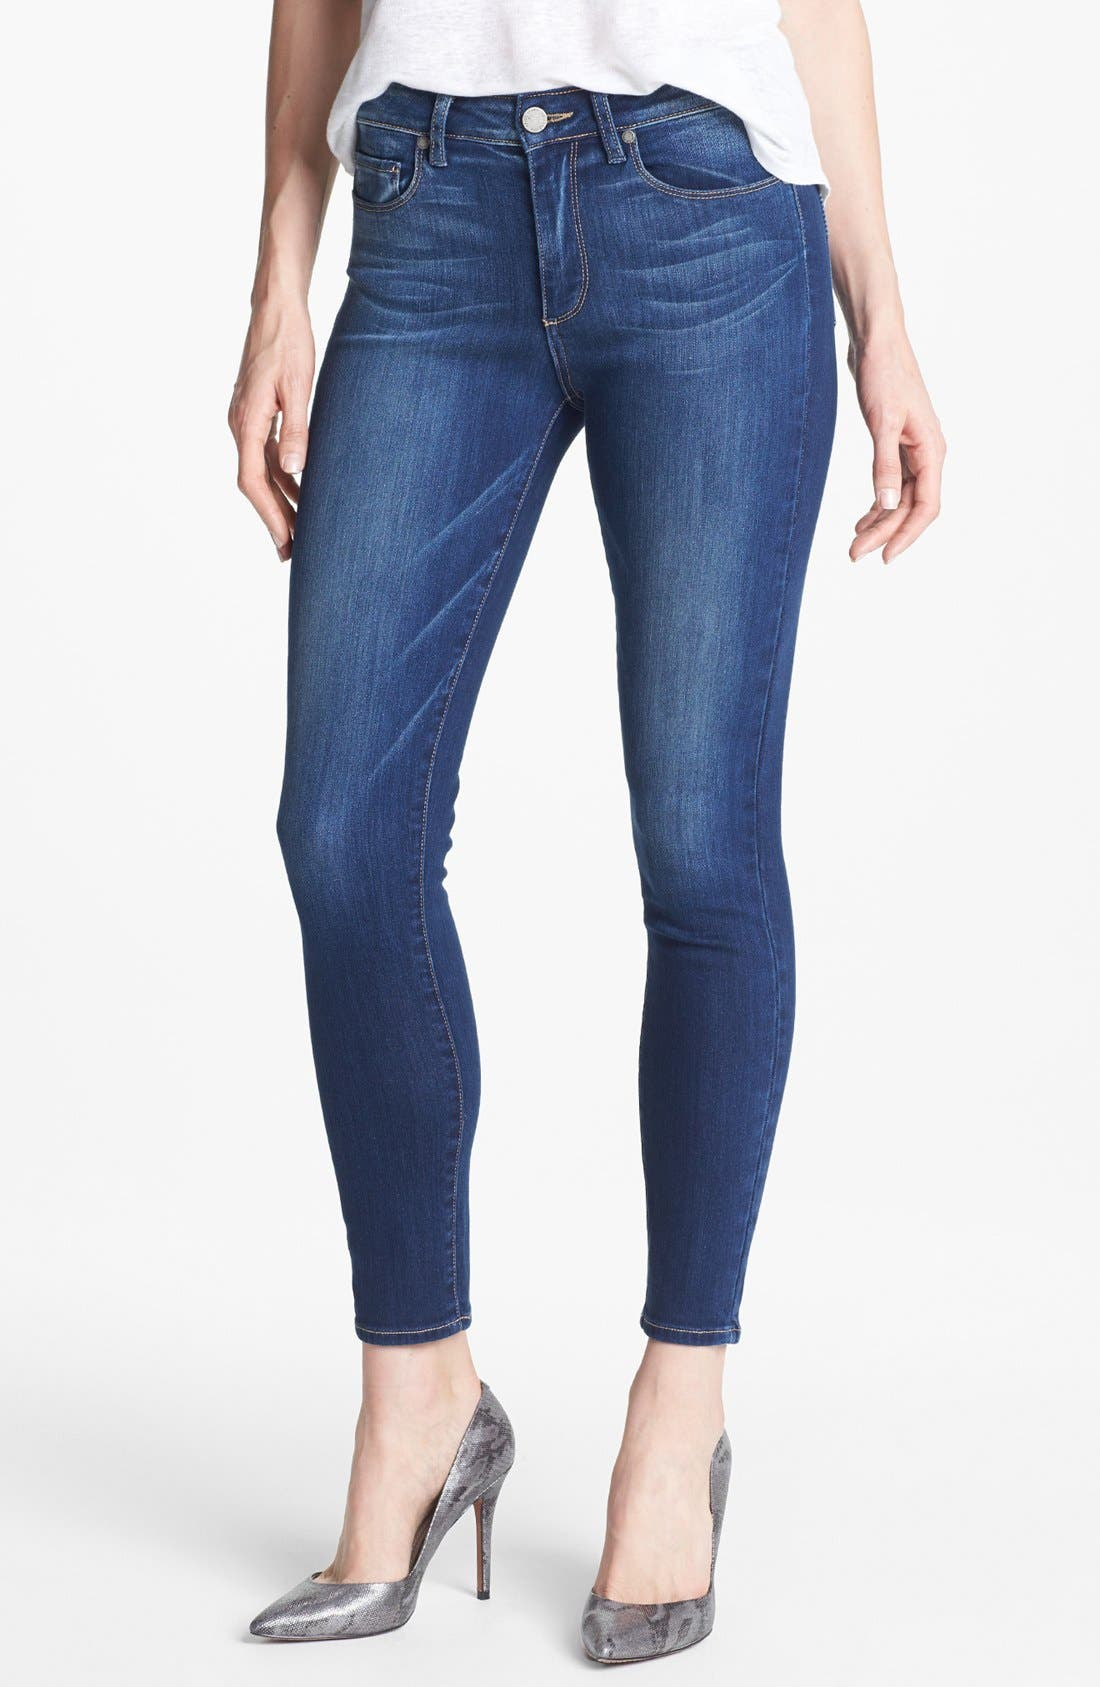 Alternate Image 1 Selected - Paige Denim 'Hoxton' Skinny Ankle Jeans (Light Year)